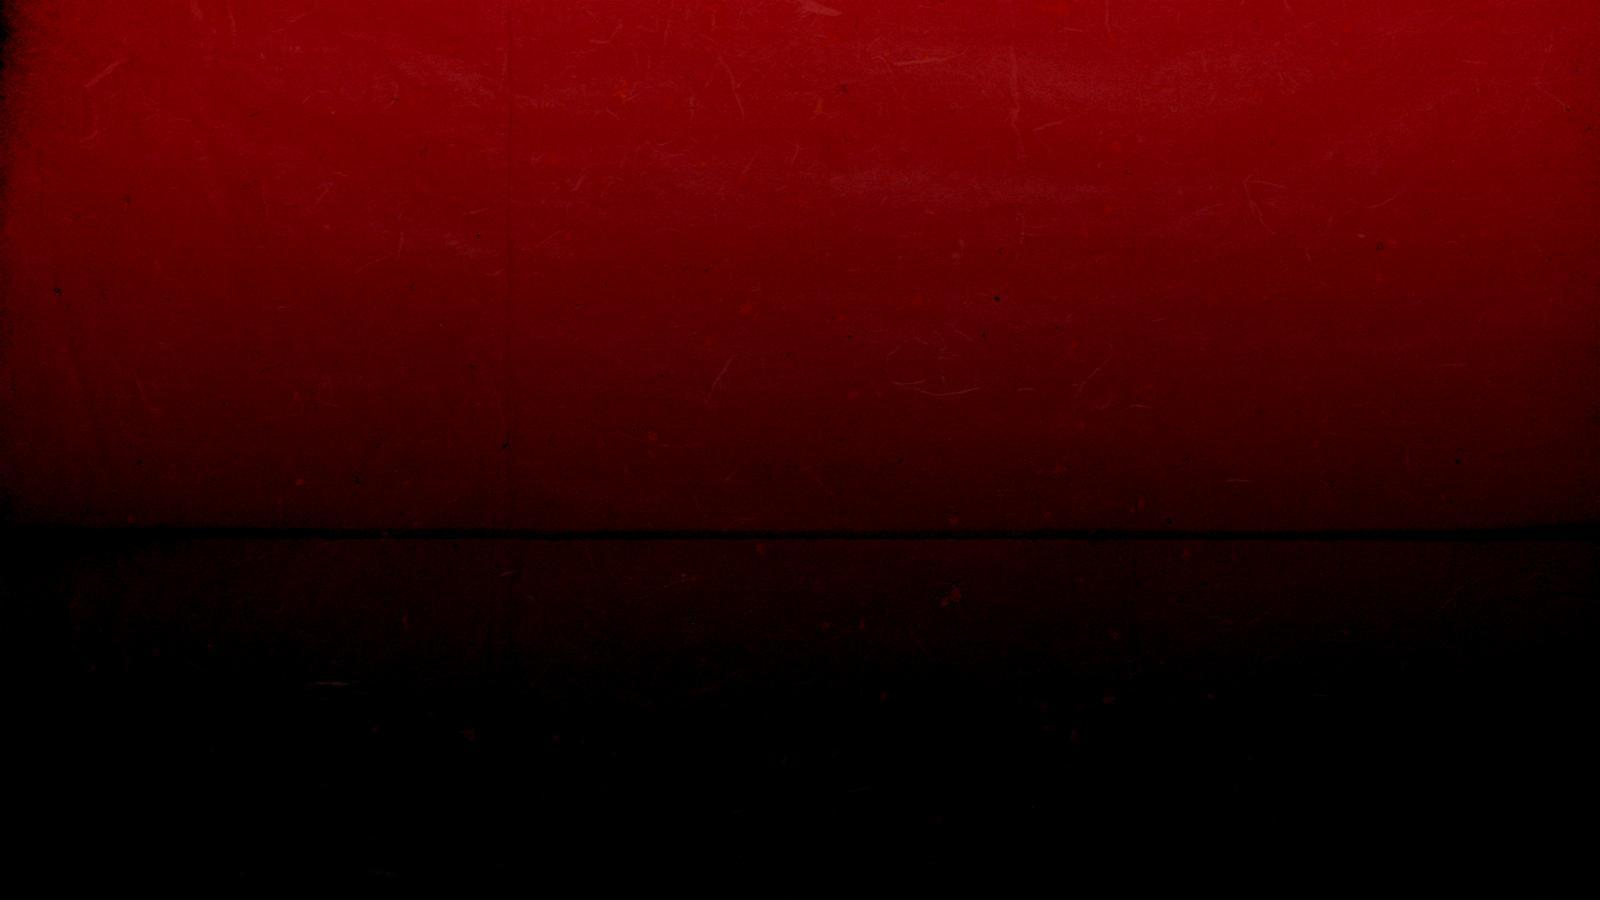 black and red wallpapers free wallpaper hd for desktop android